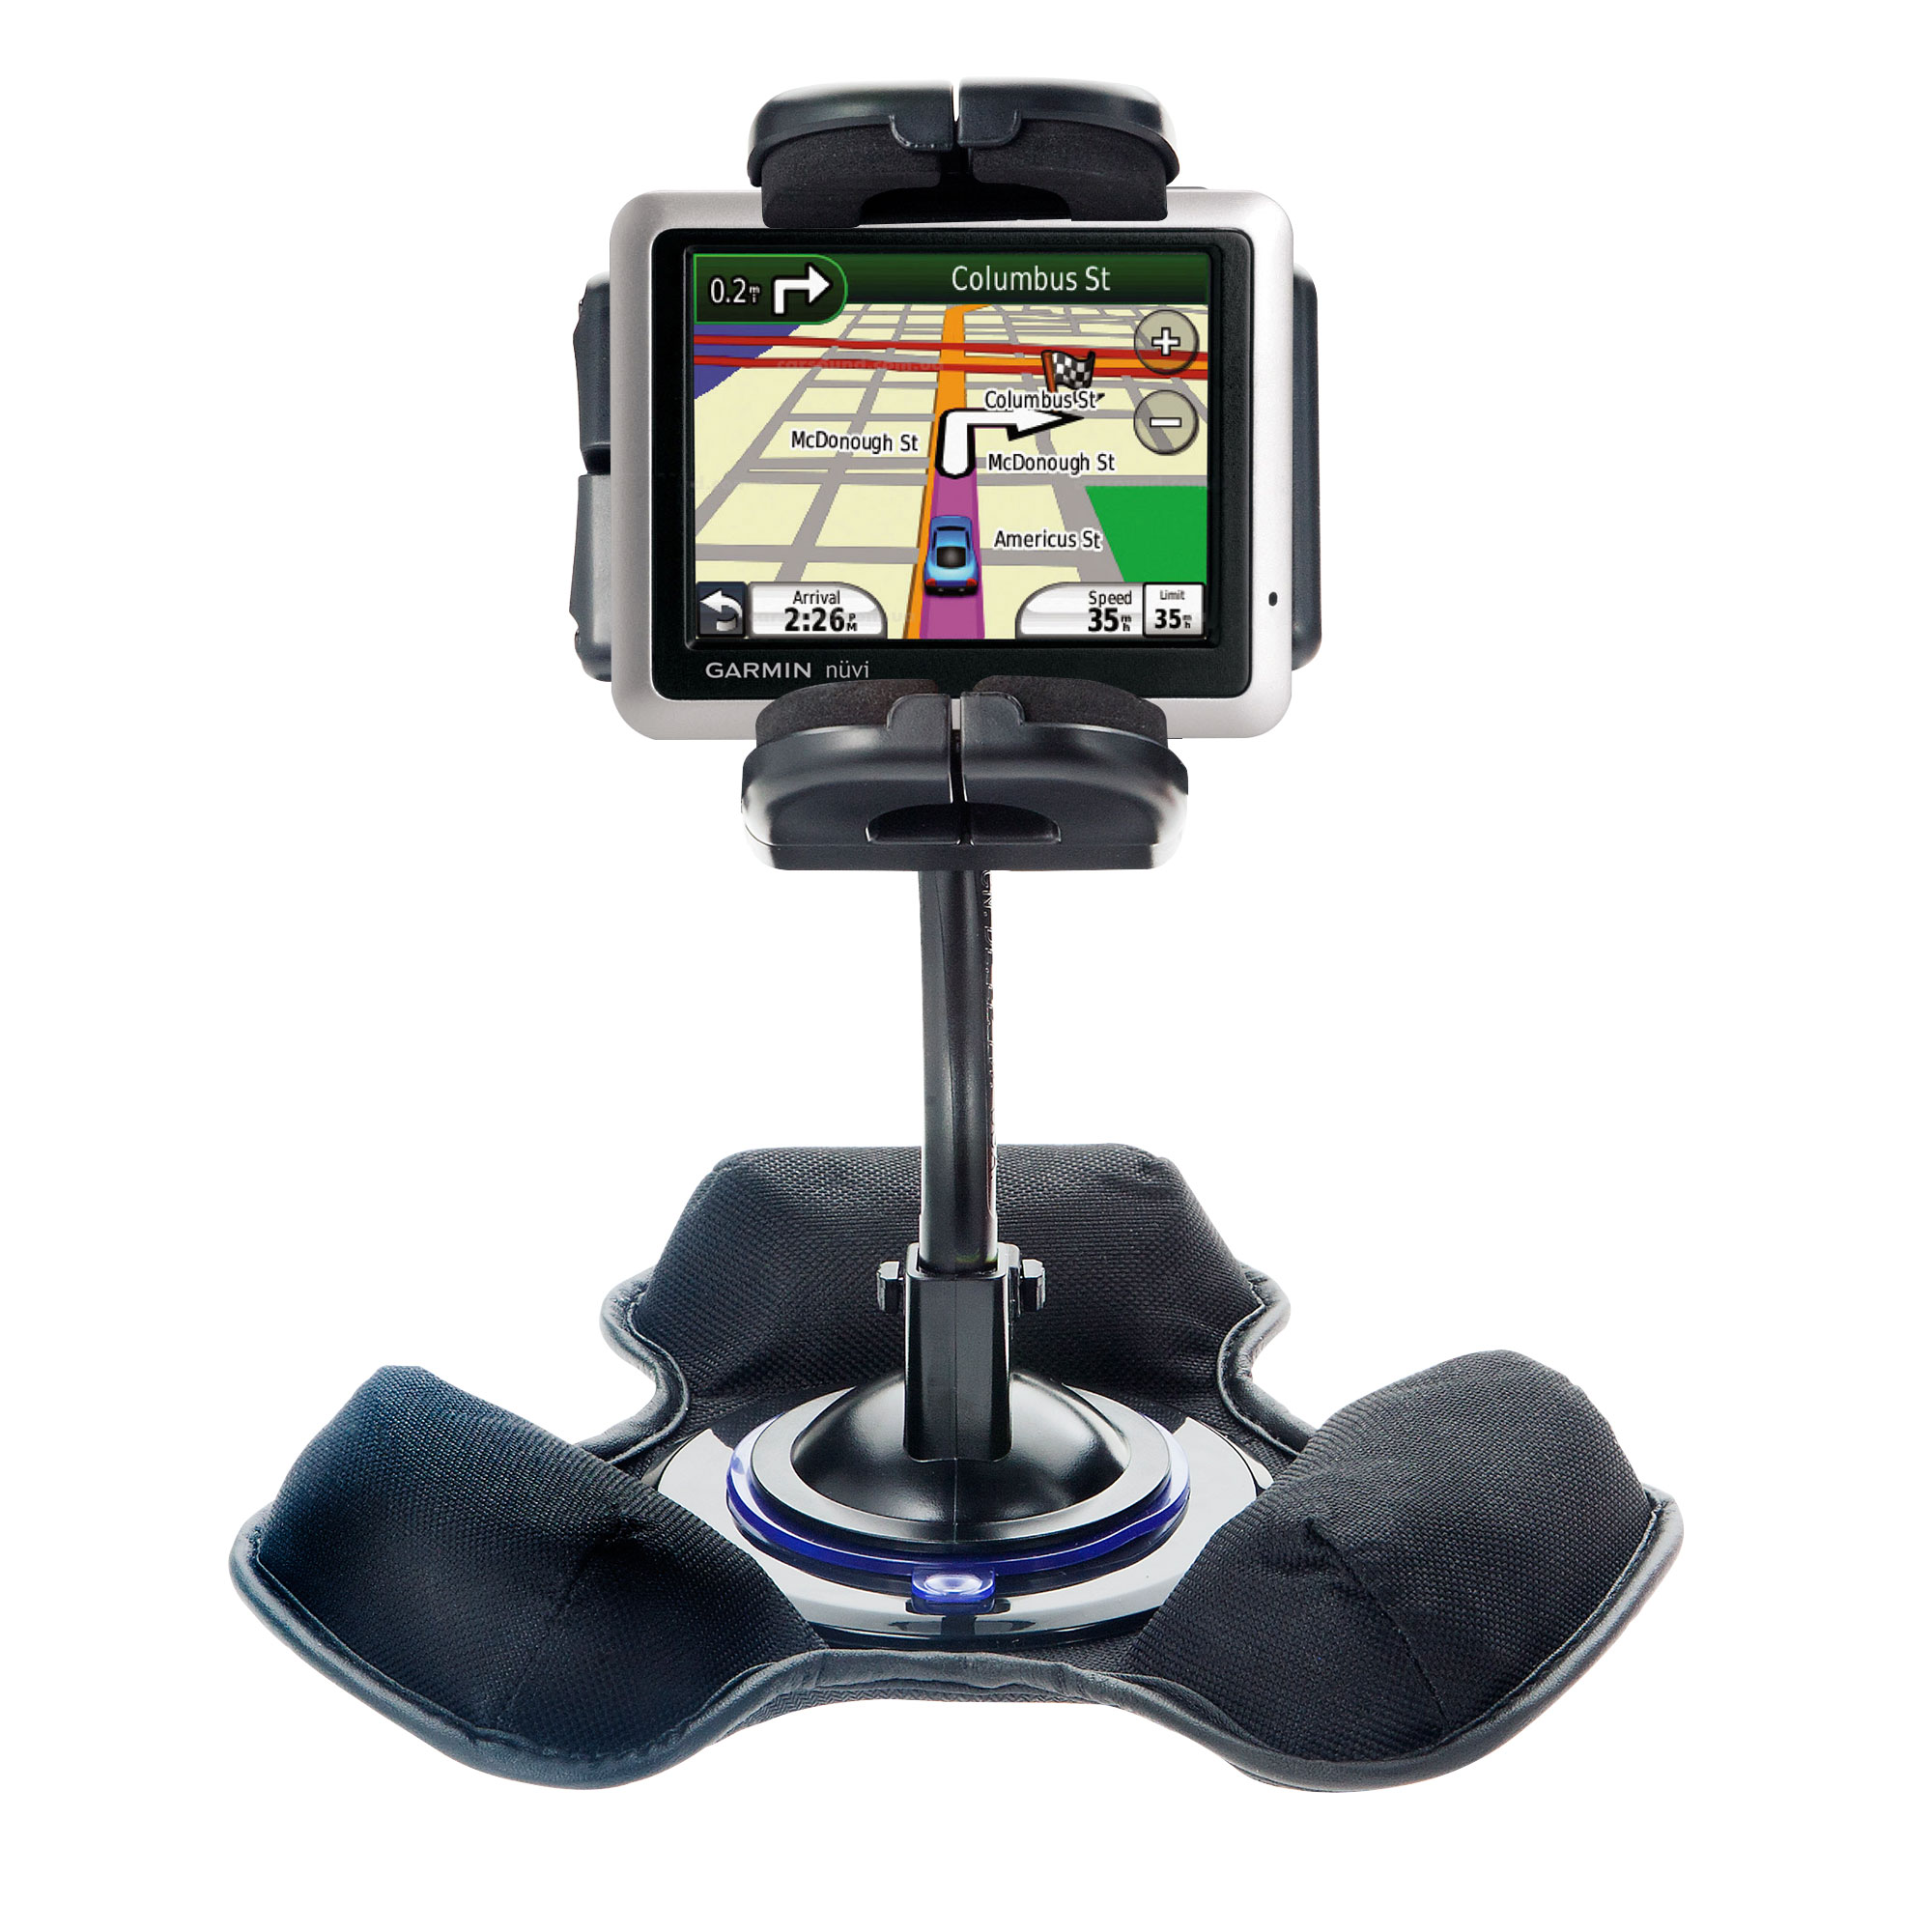 Dash and Windshield Holder compatible with the Garmin Nuvi 1245 City Chic